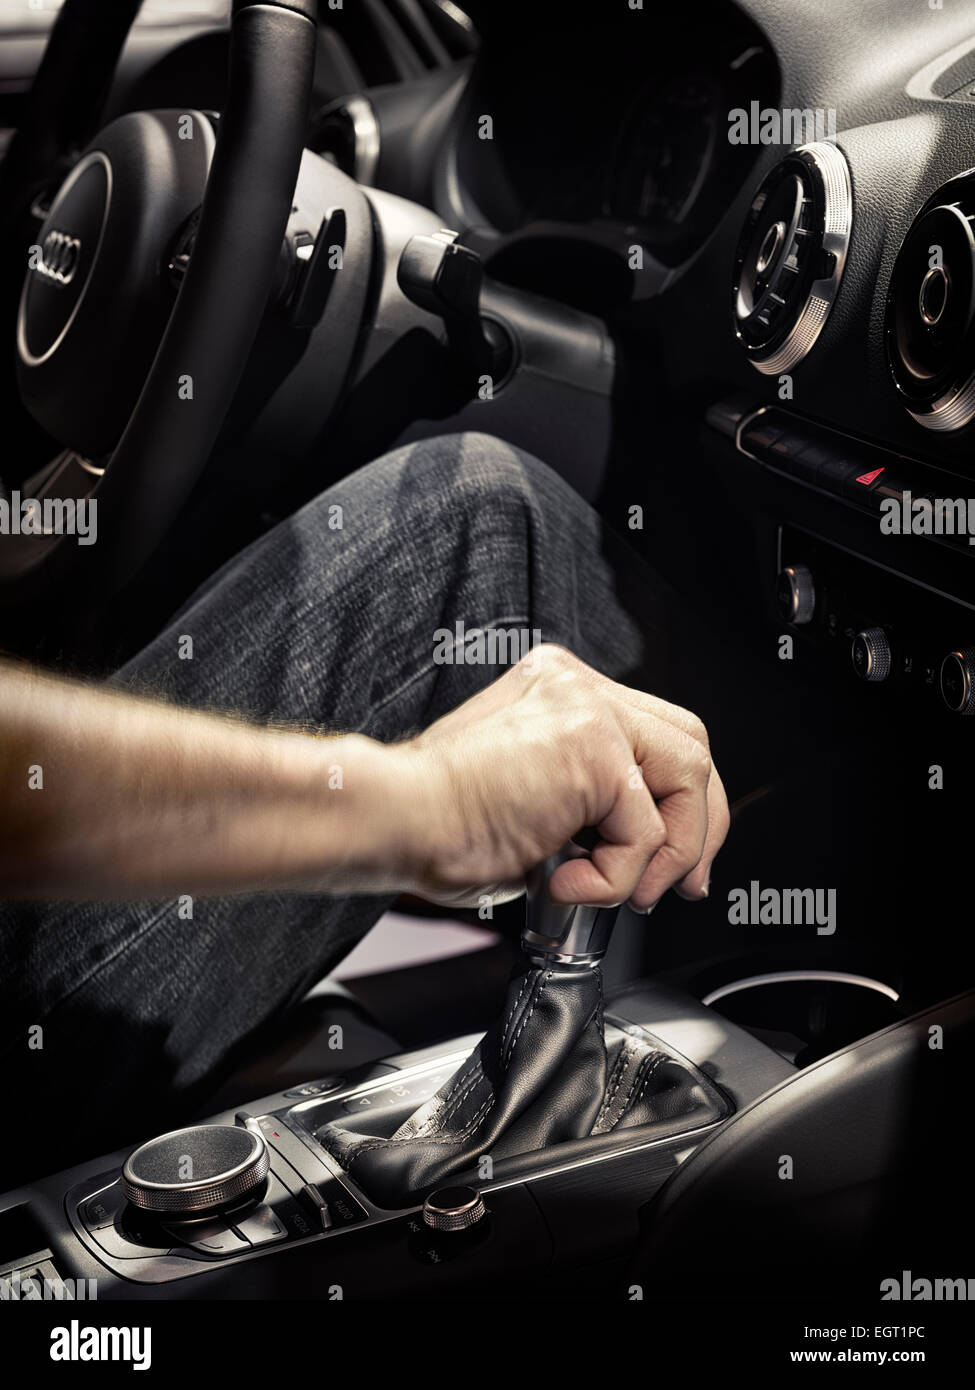 Closeup of a man driving a car with his hand on a gear shift lever - Stock Image